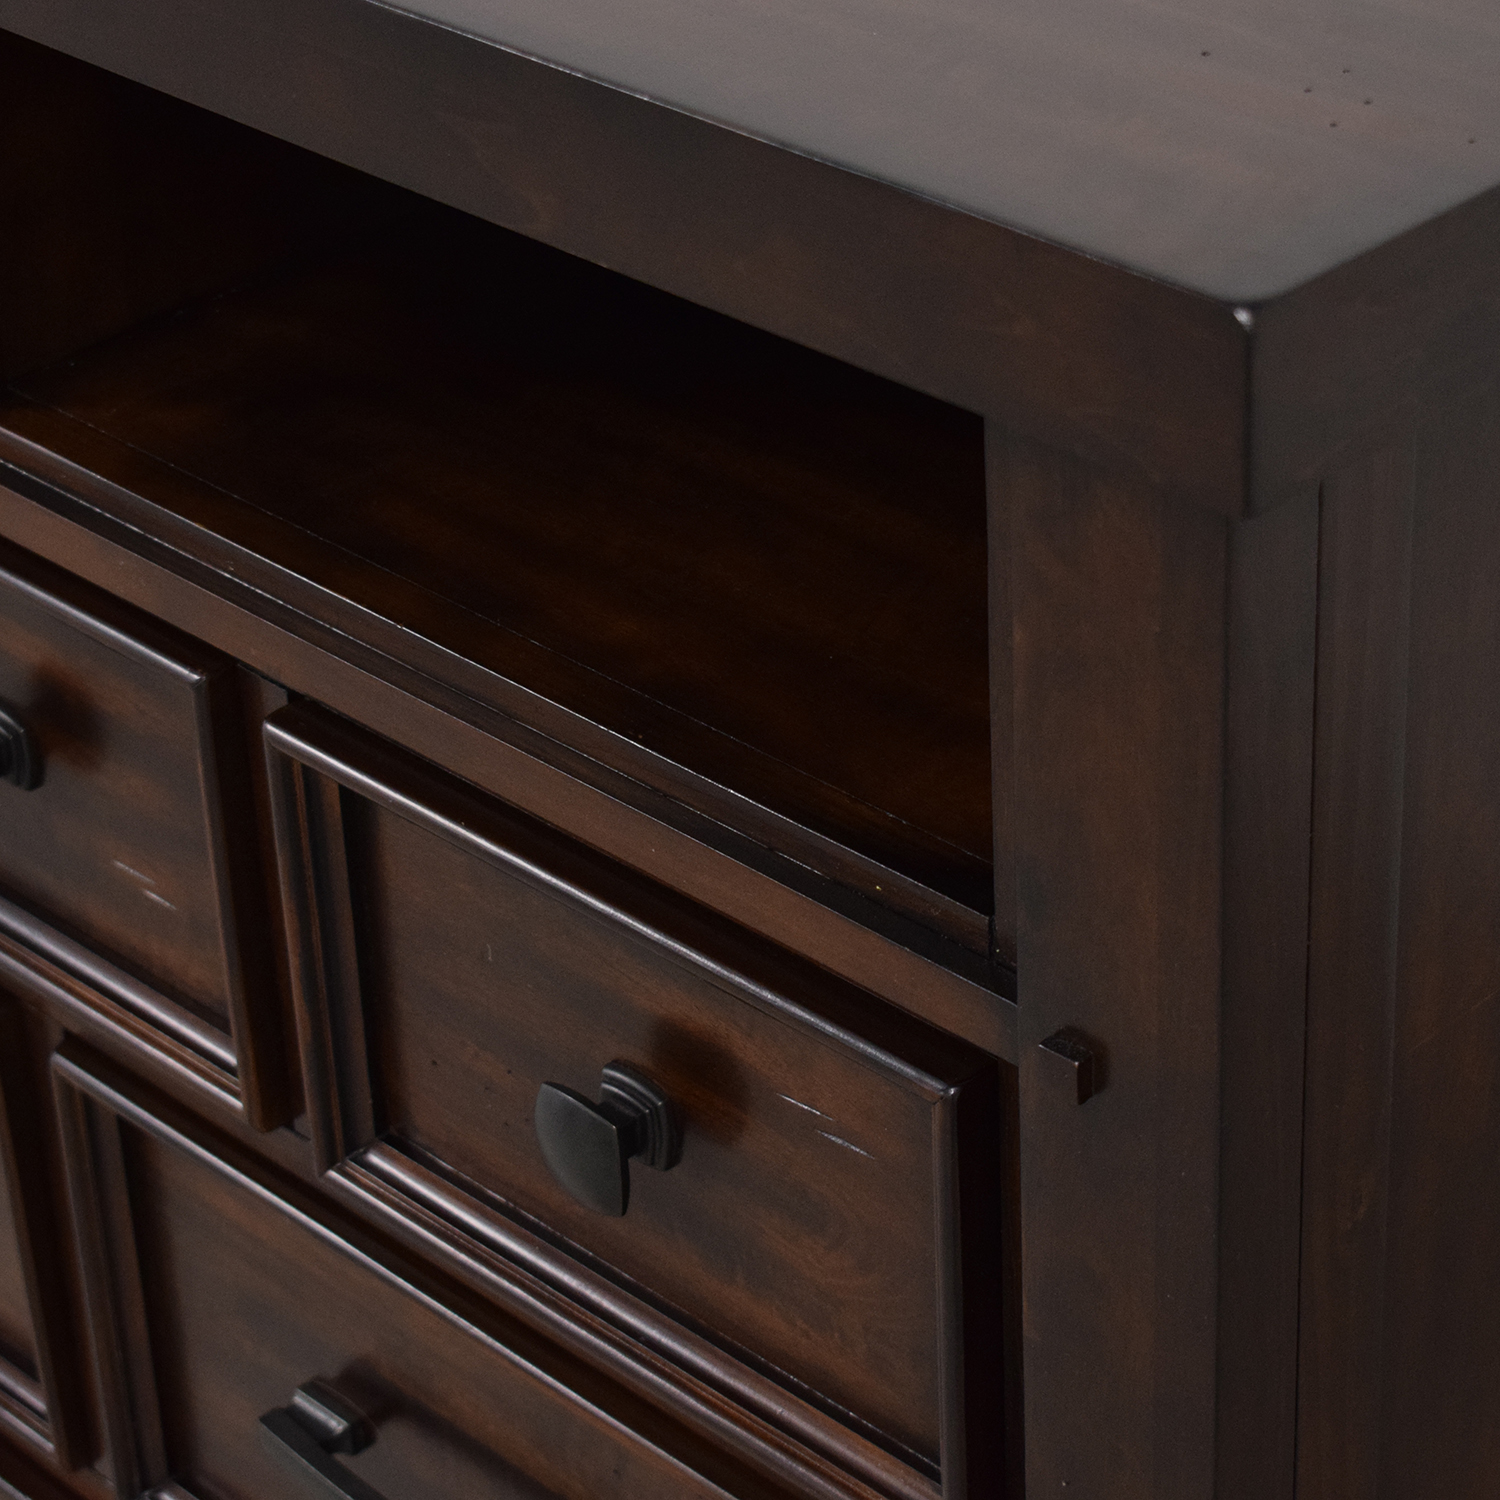 Hudson Goods Chest of Drawers / Dressers